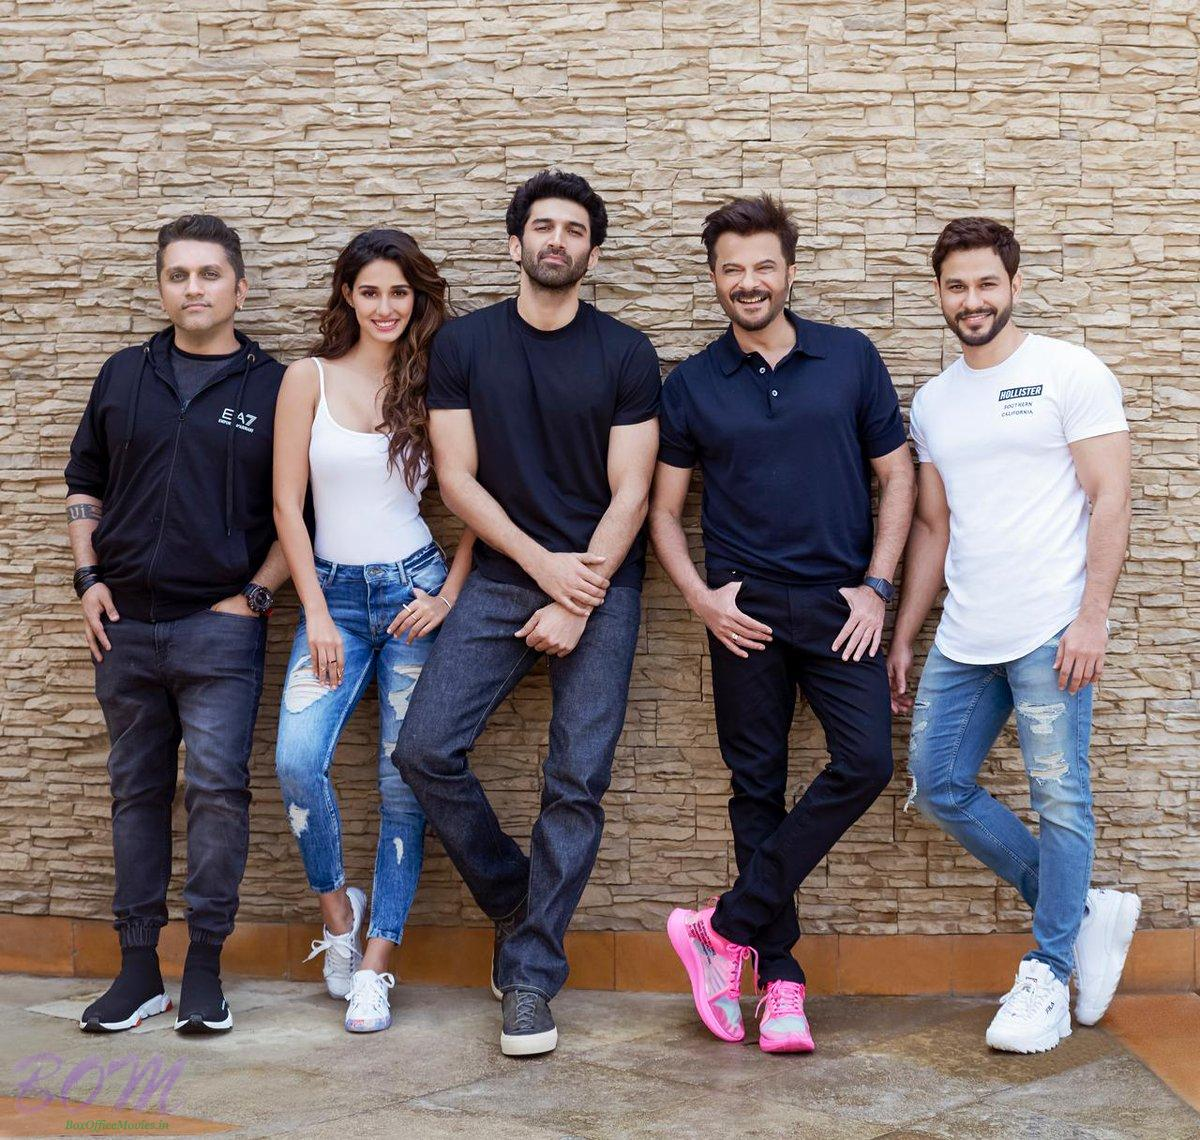 Malang movie leading star casts – Anil Kapoor, Aditya Roy Kapur, Disha Patani, Kunal Kemmu